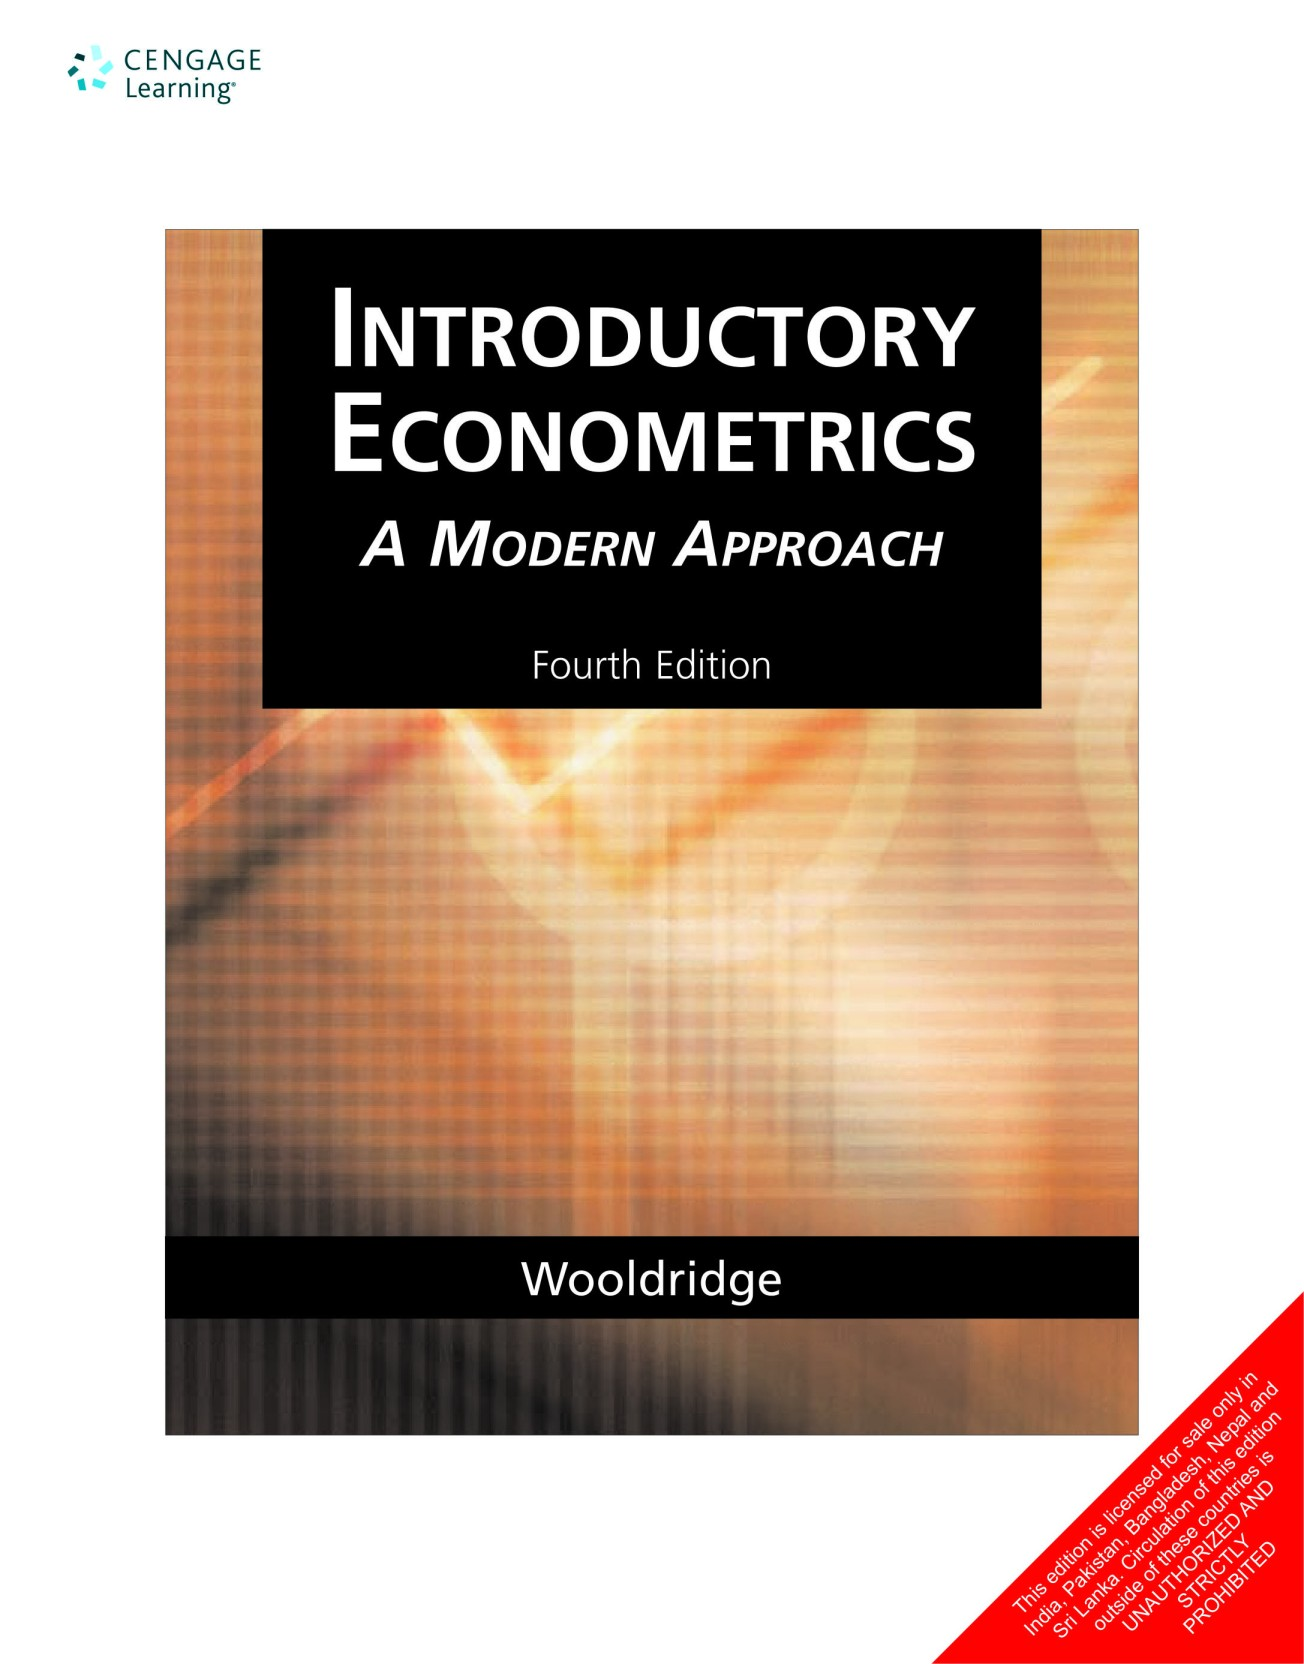 Introductory Econometrics: A Modern Approach w/CD 4th Edition. Home